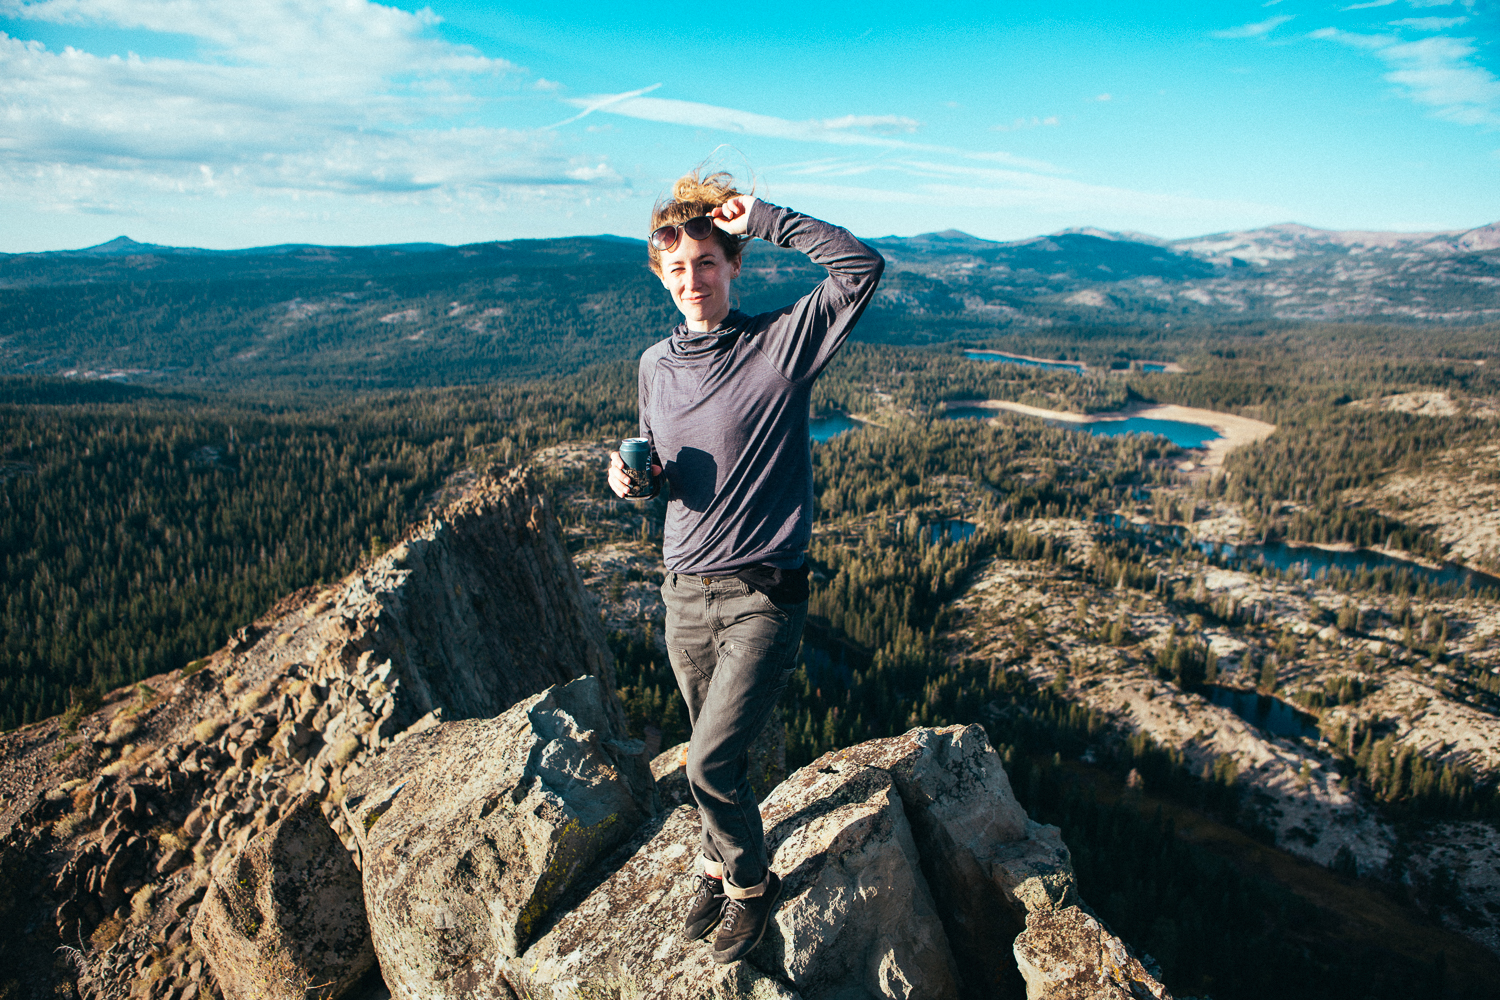 Since I feel like it's my new mission to find cliffs and photograph them, Leslie  and I hiked up to Donner Summit and climbed Devils Peak. This drop is 'only'a couple hundred feet right behind her though... child's play.